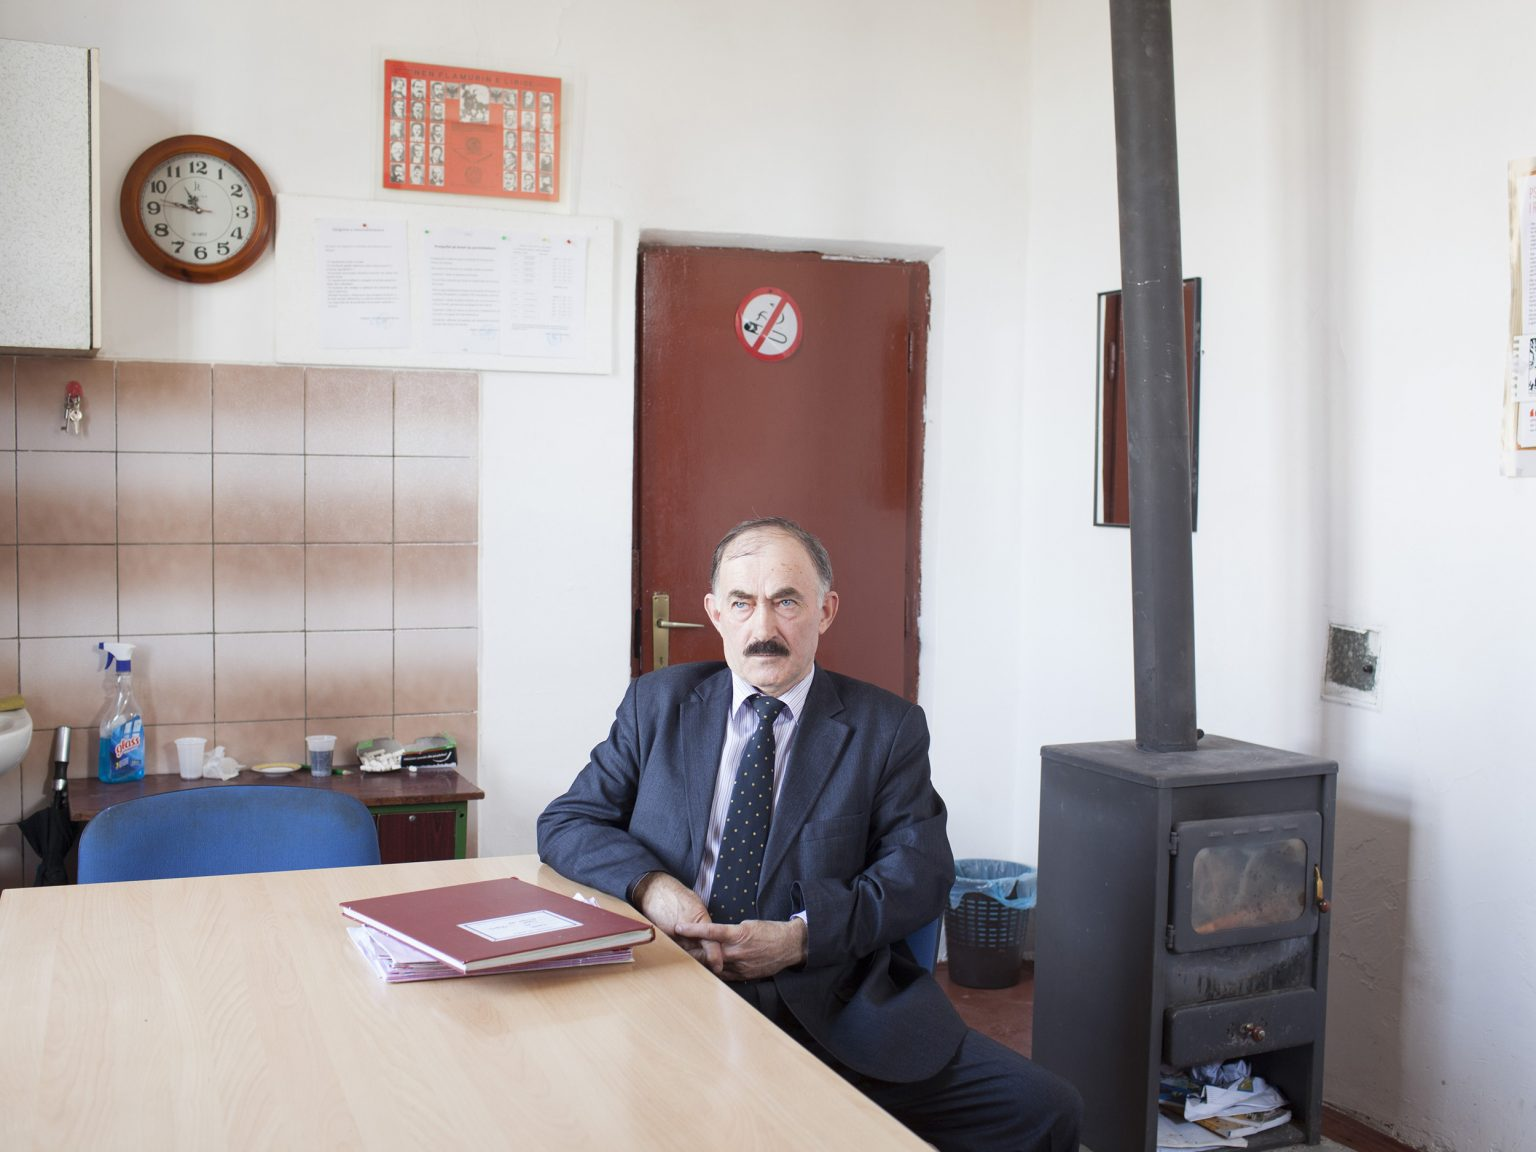 Beqir Murati, 64 years old, professor of chemistry of the divided school of Rubofc / Rubovce.  e school is divided inside by a wall, separating Serbian and Albanian students.